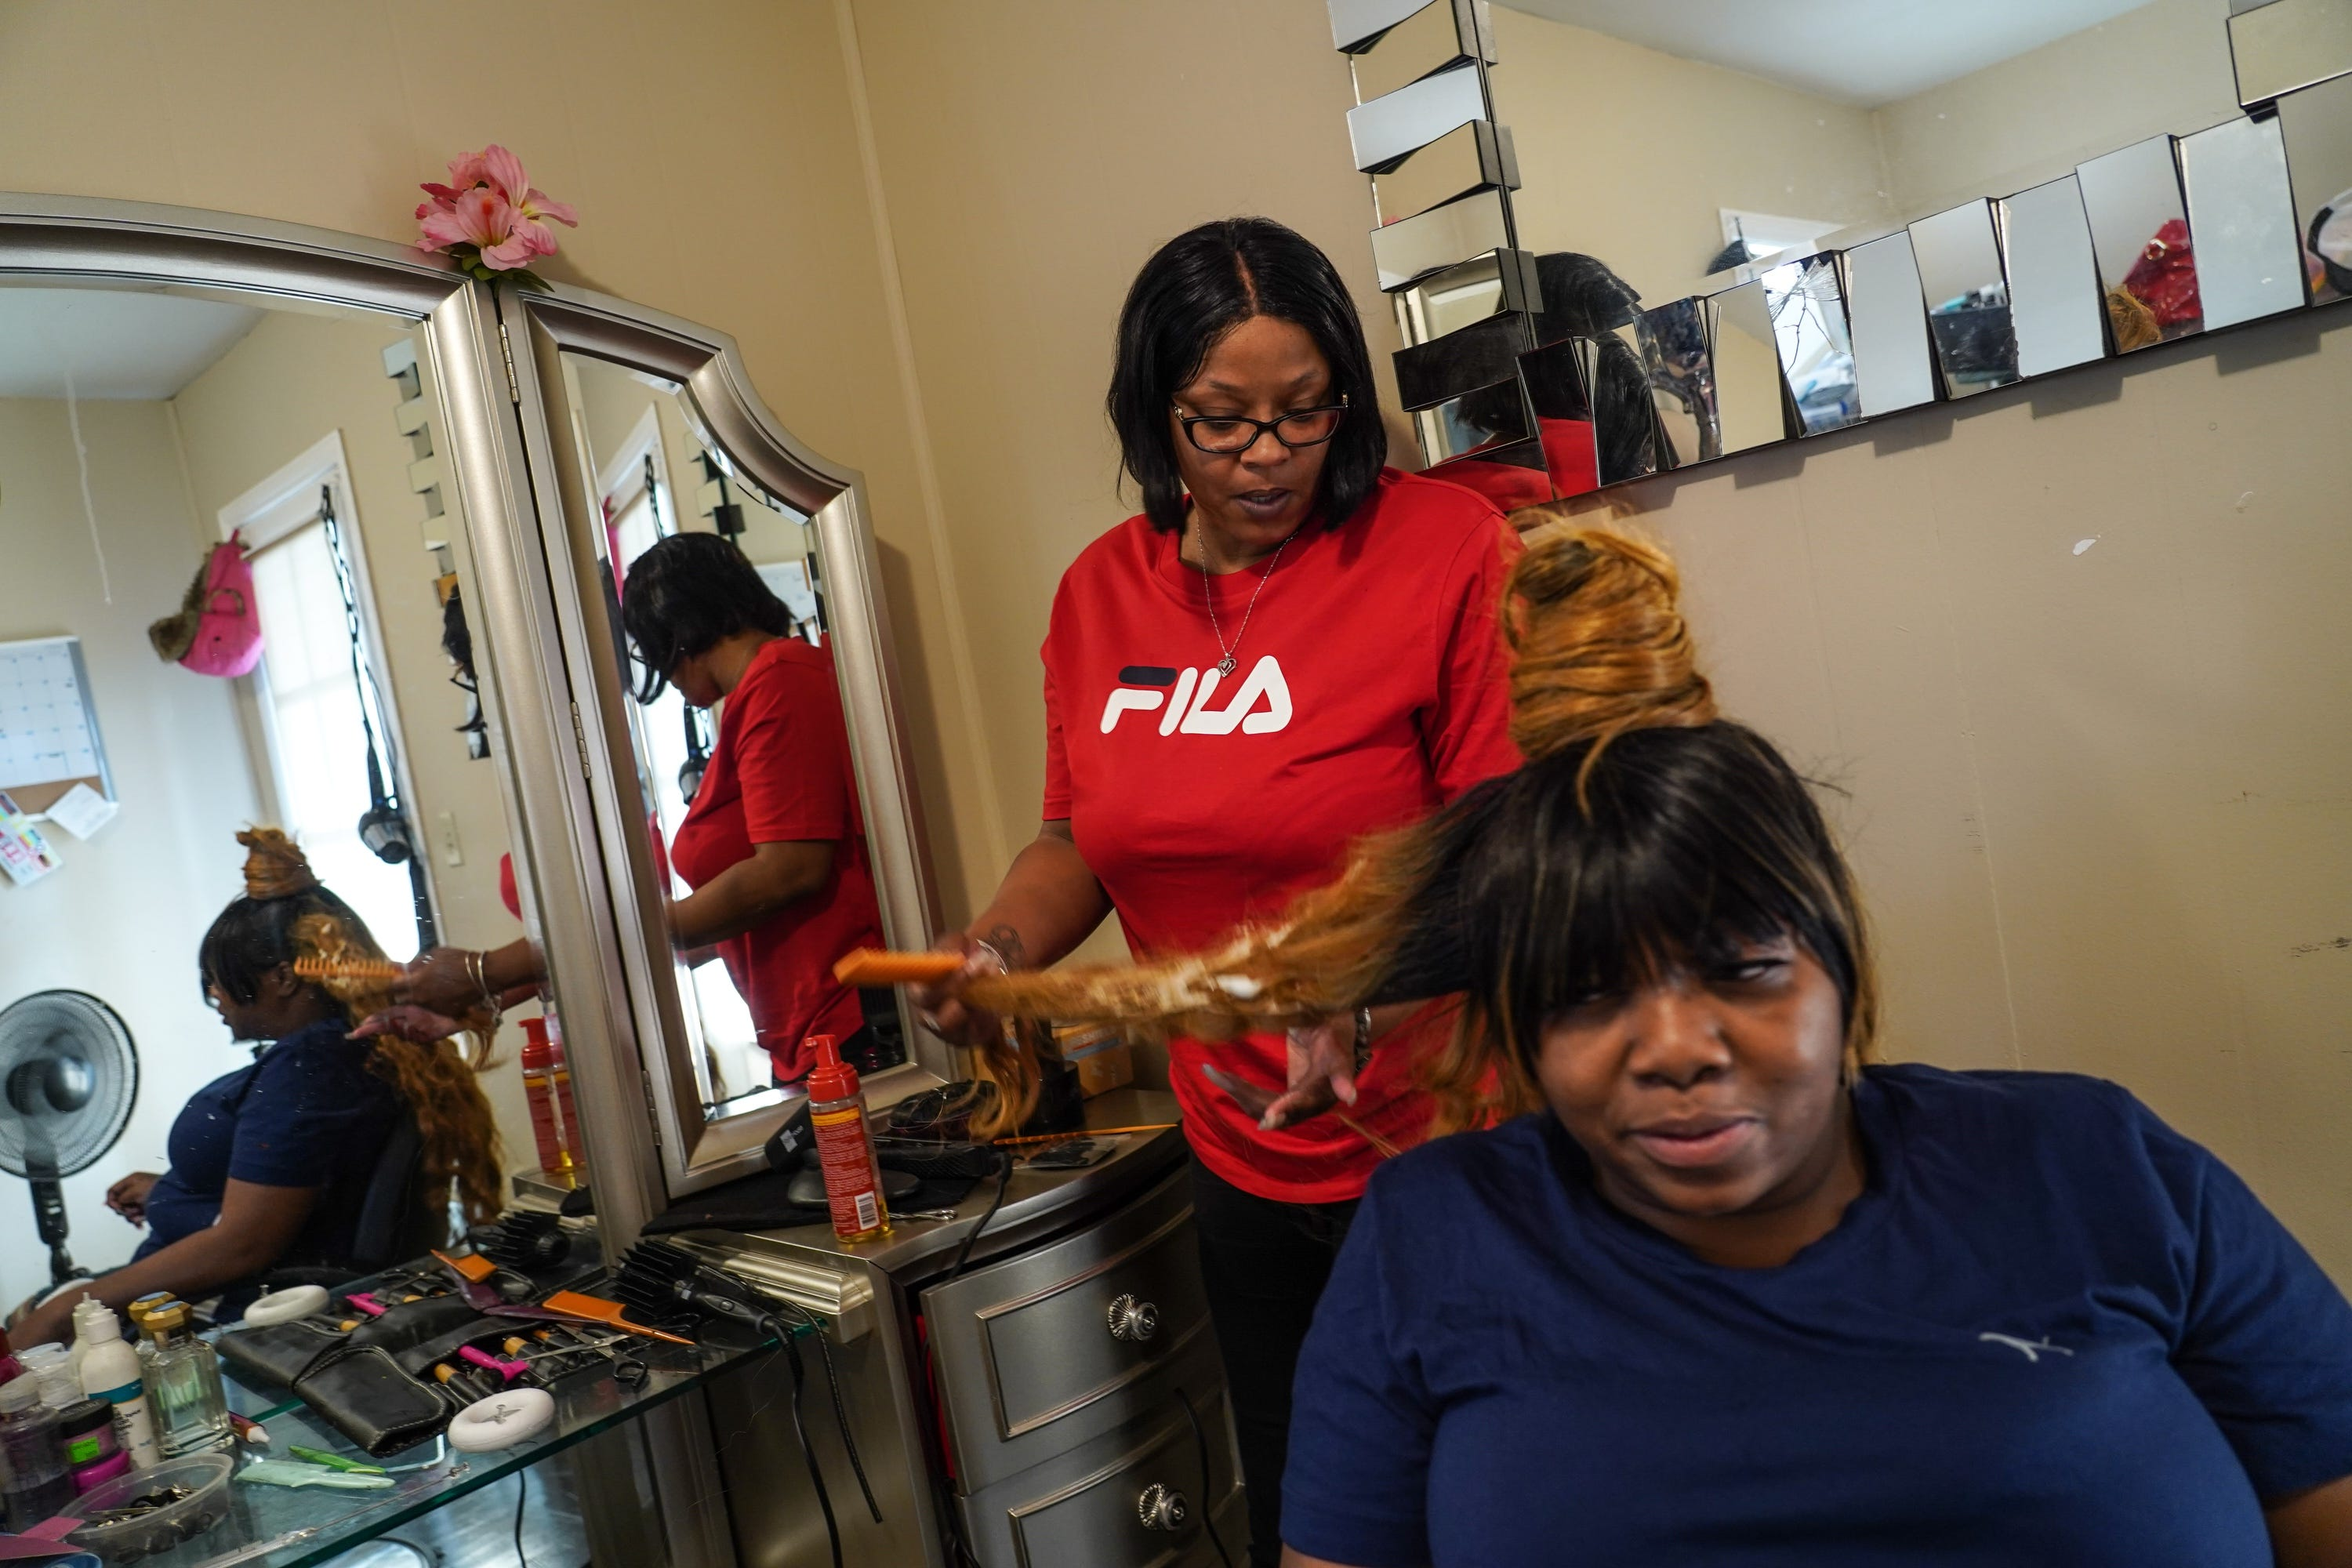 Detroit resident Nyosha Fowler, left, fixes a hairpiece for her friend Tyese White. Fowler lost her job as a truck driver, her apartment and her car after a botched plastic surgery procedure that hospitalized her.